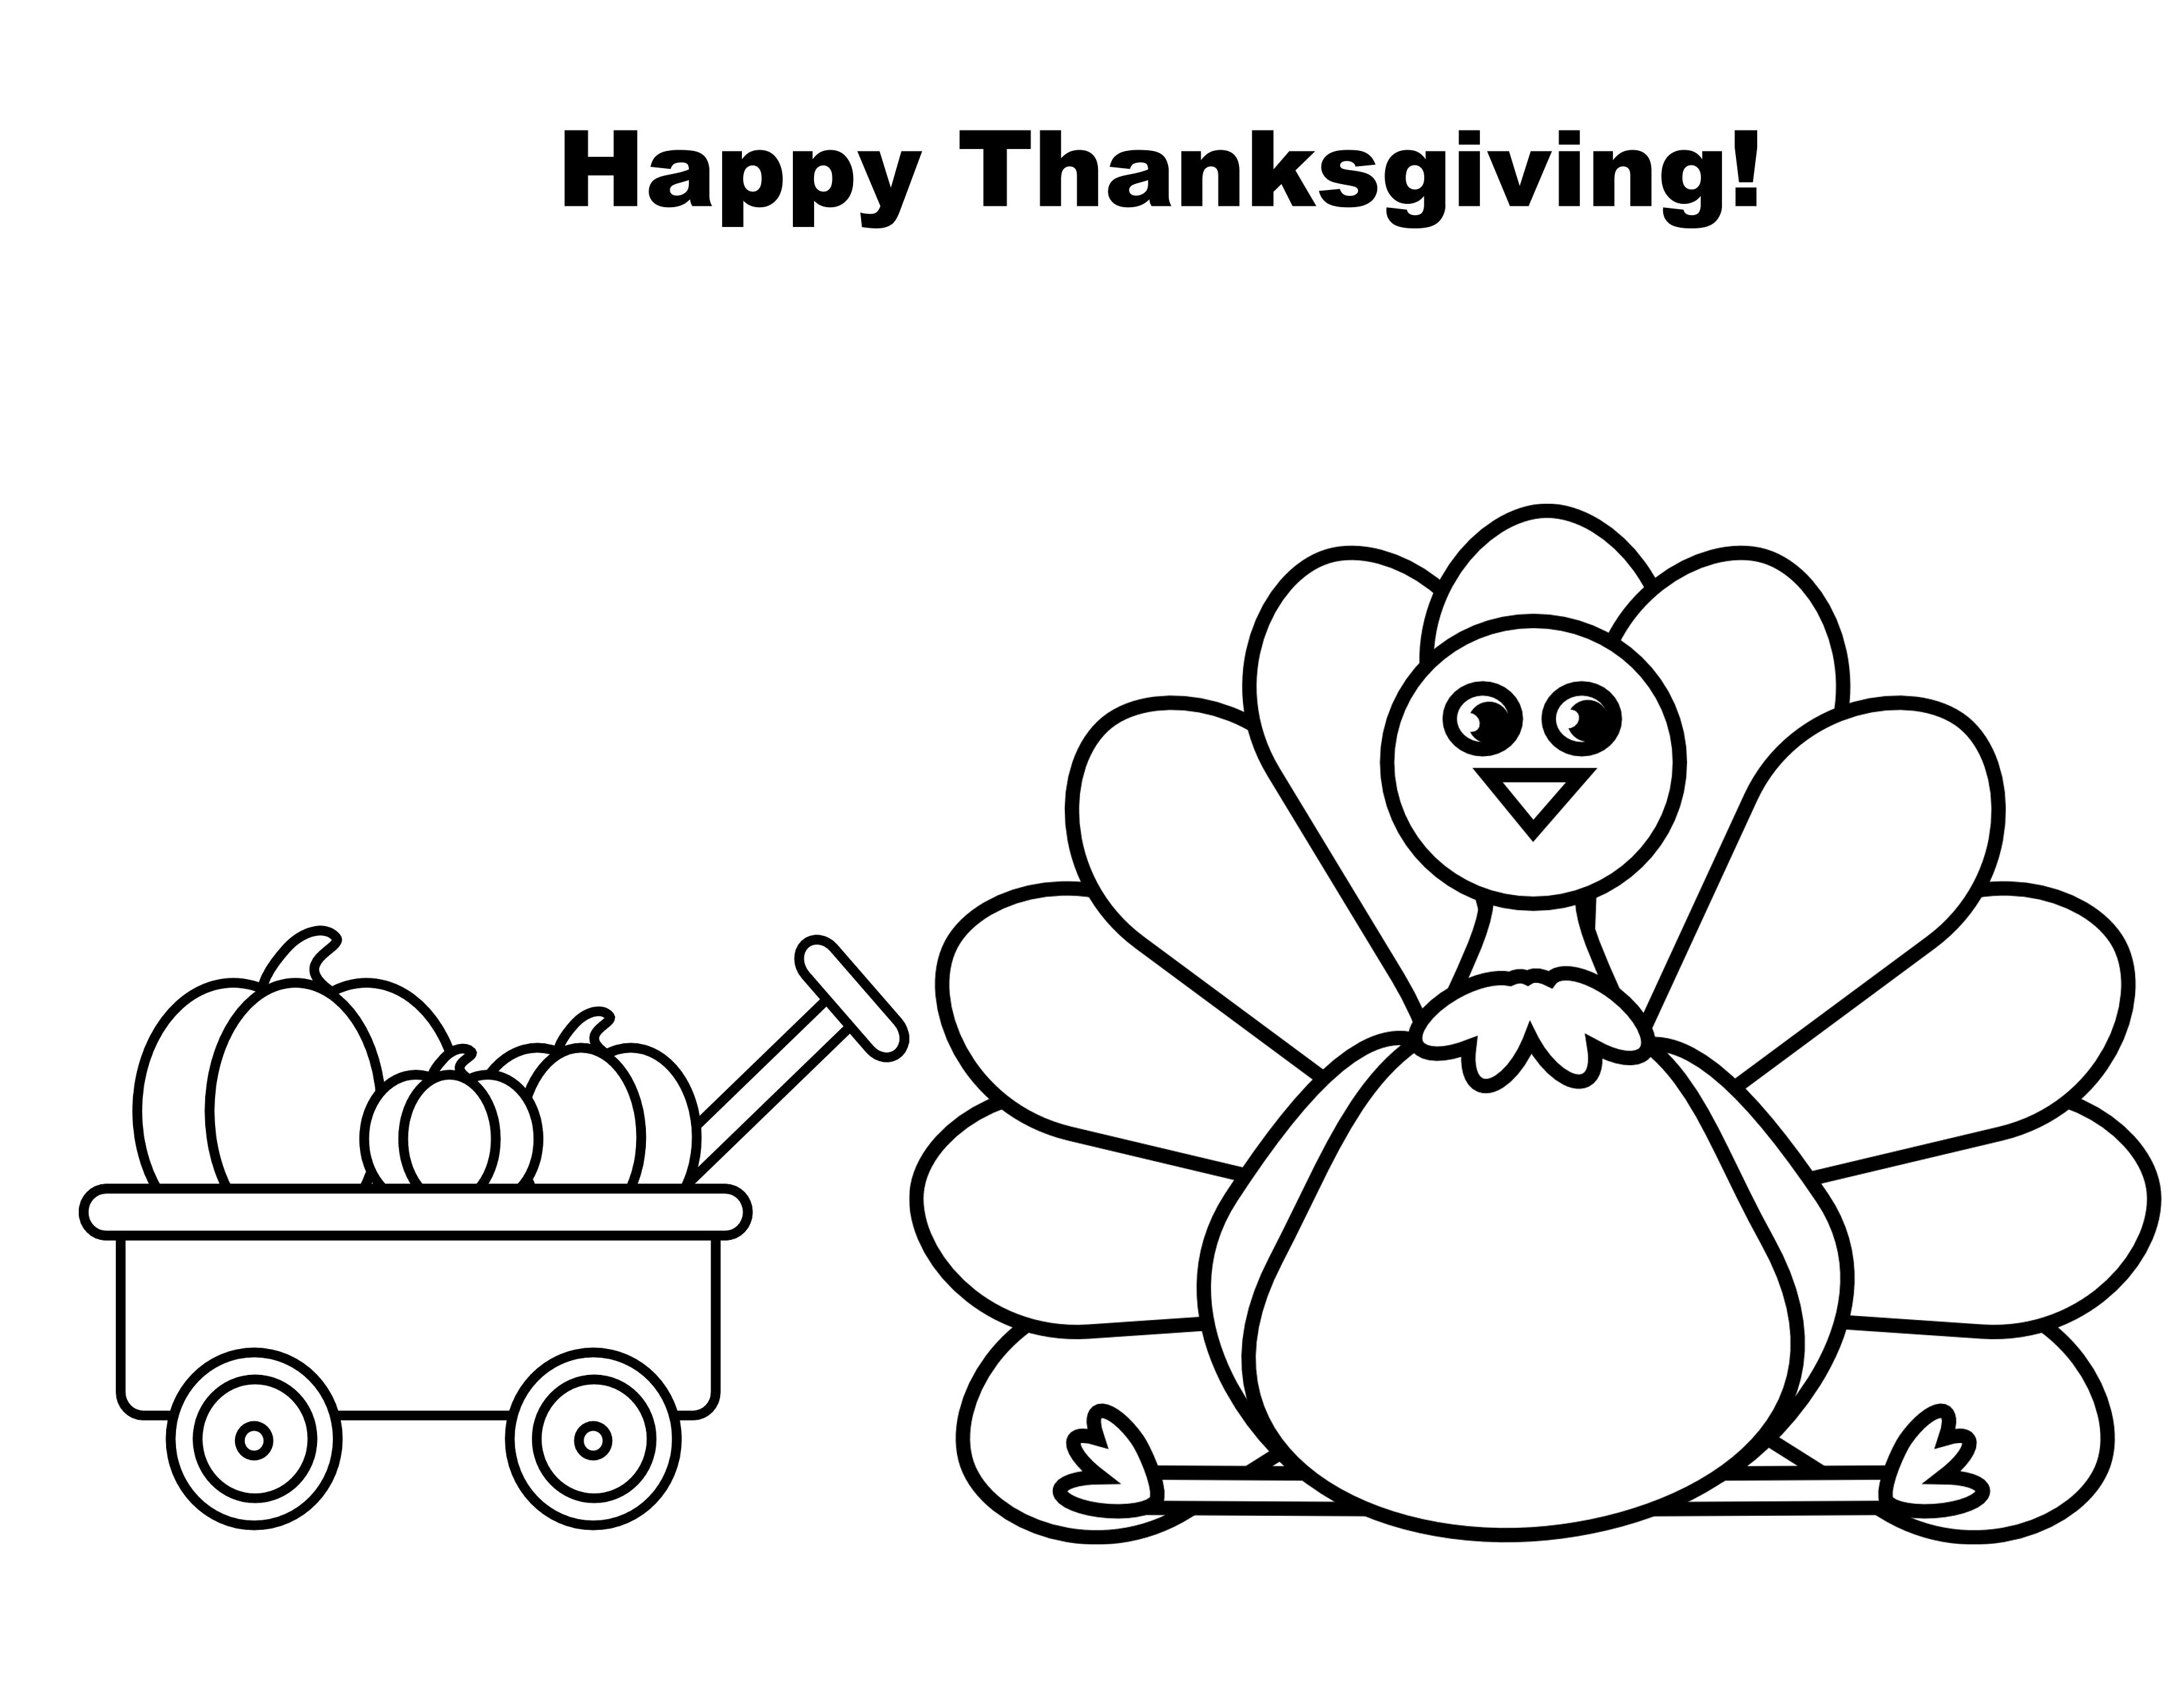 FREE Thanksgiving Color Sheet! - The Relaxed Homeschool